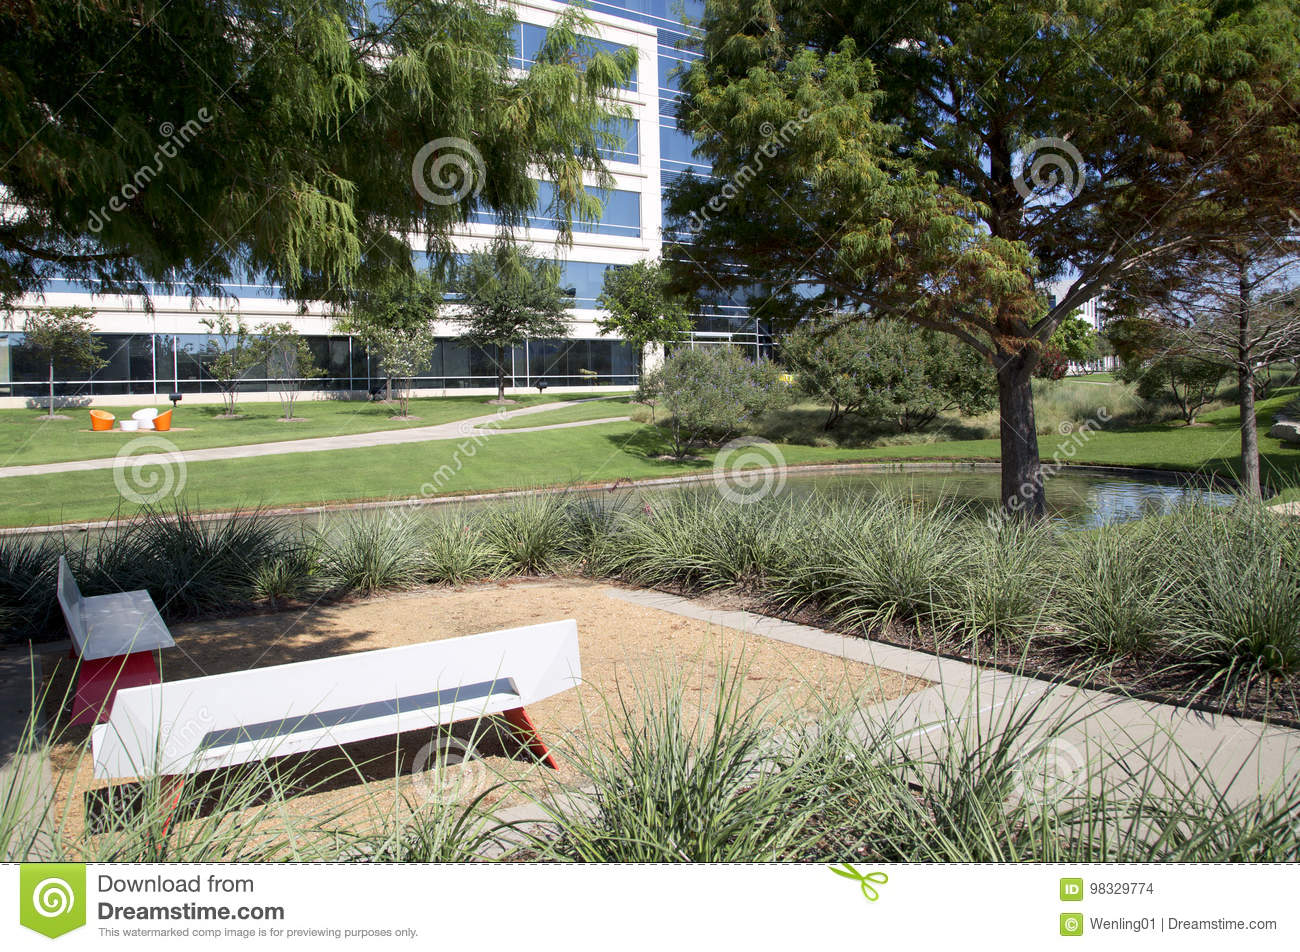 Modern buildings and landscapes design in Hall Park